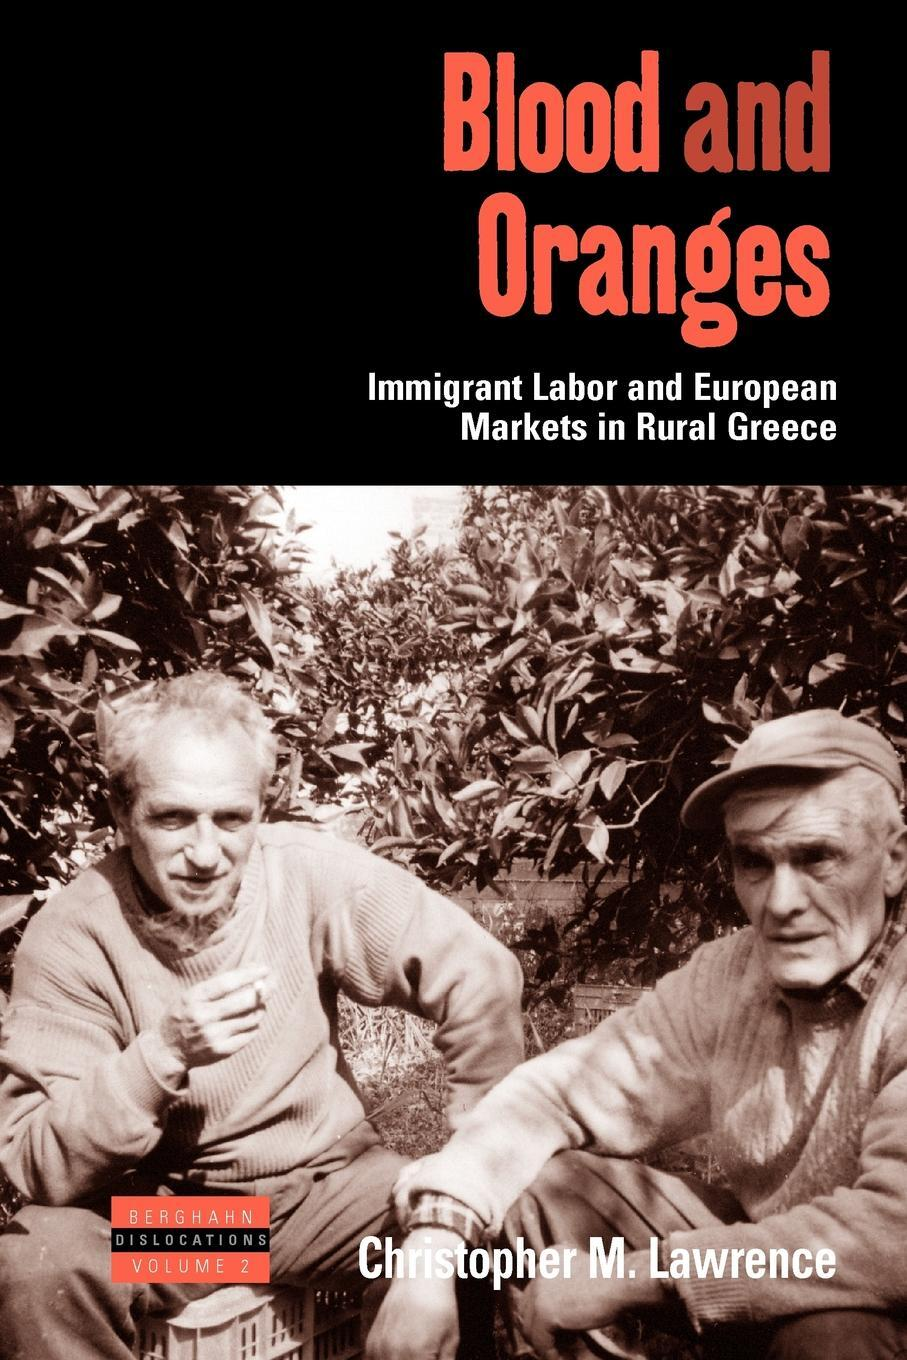 Blood and Oranges. Immigrant Labor and European Markets in Rural Greece 9780857451439